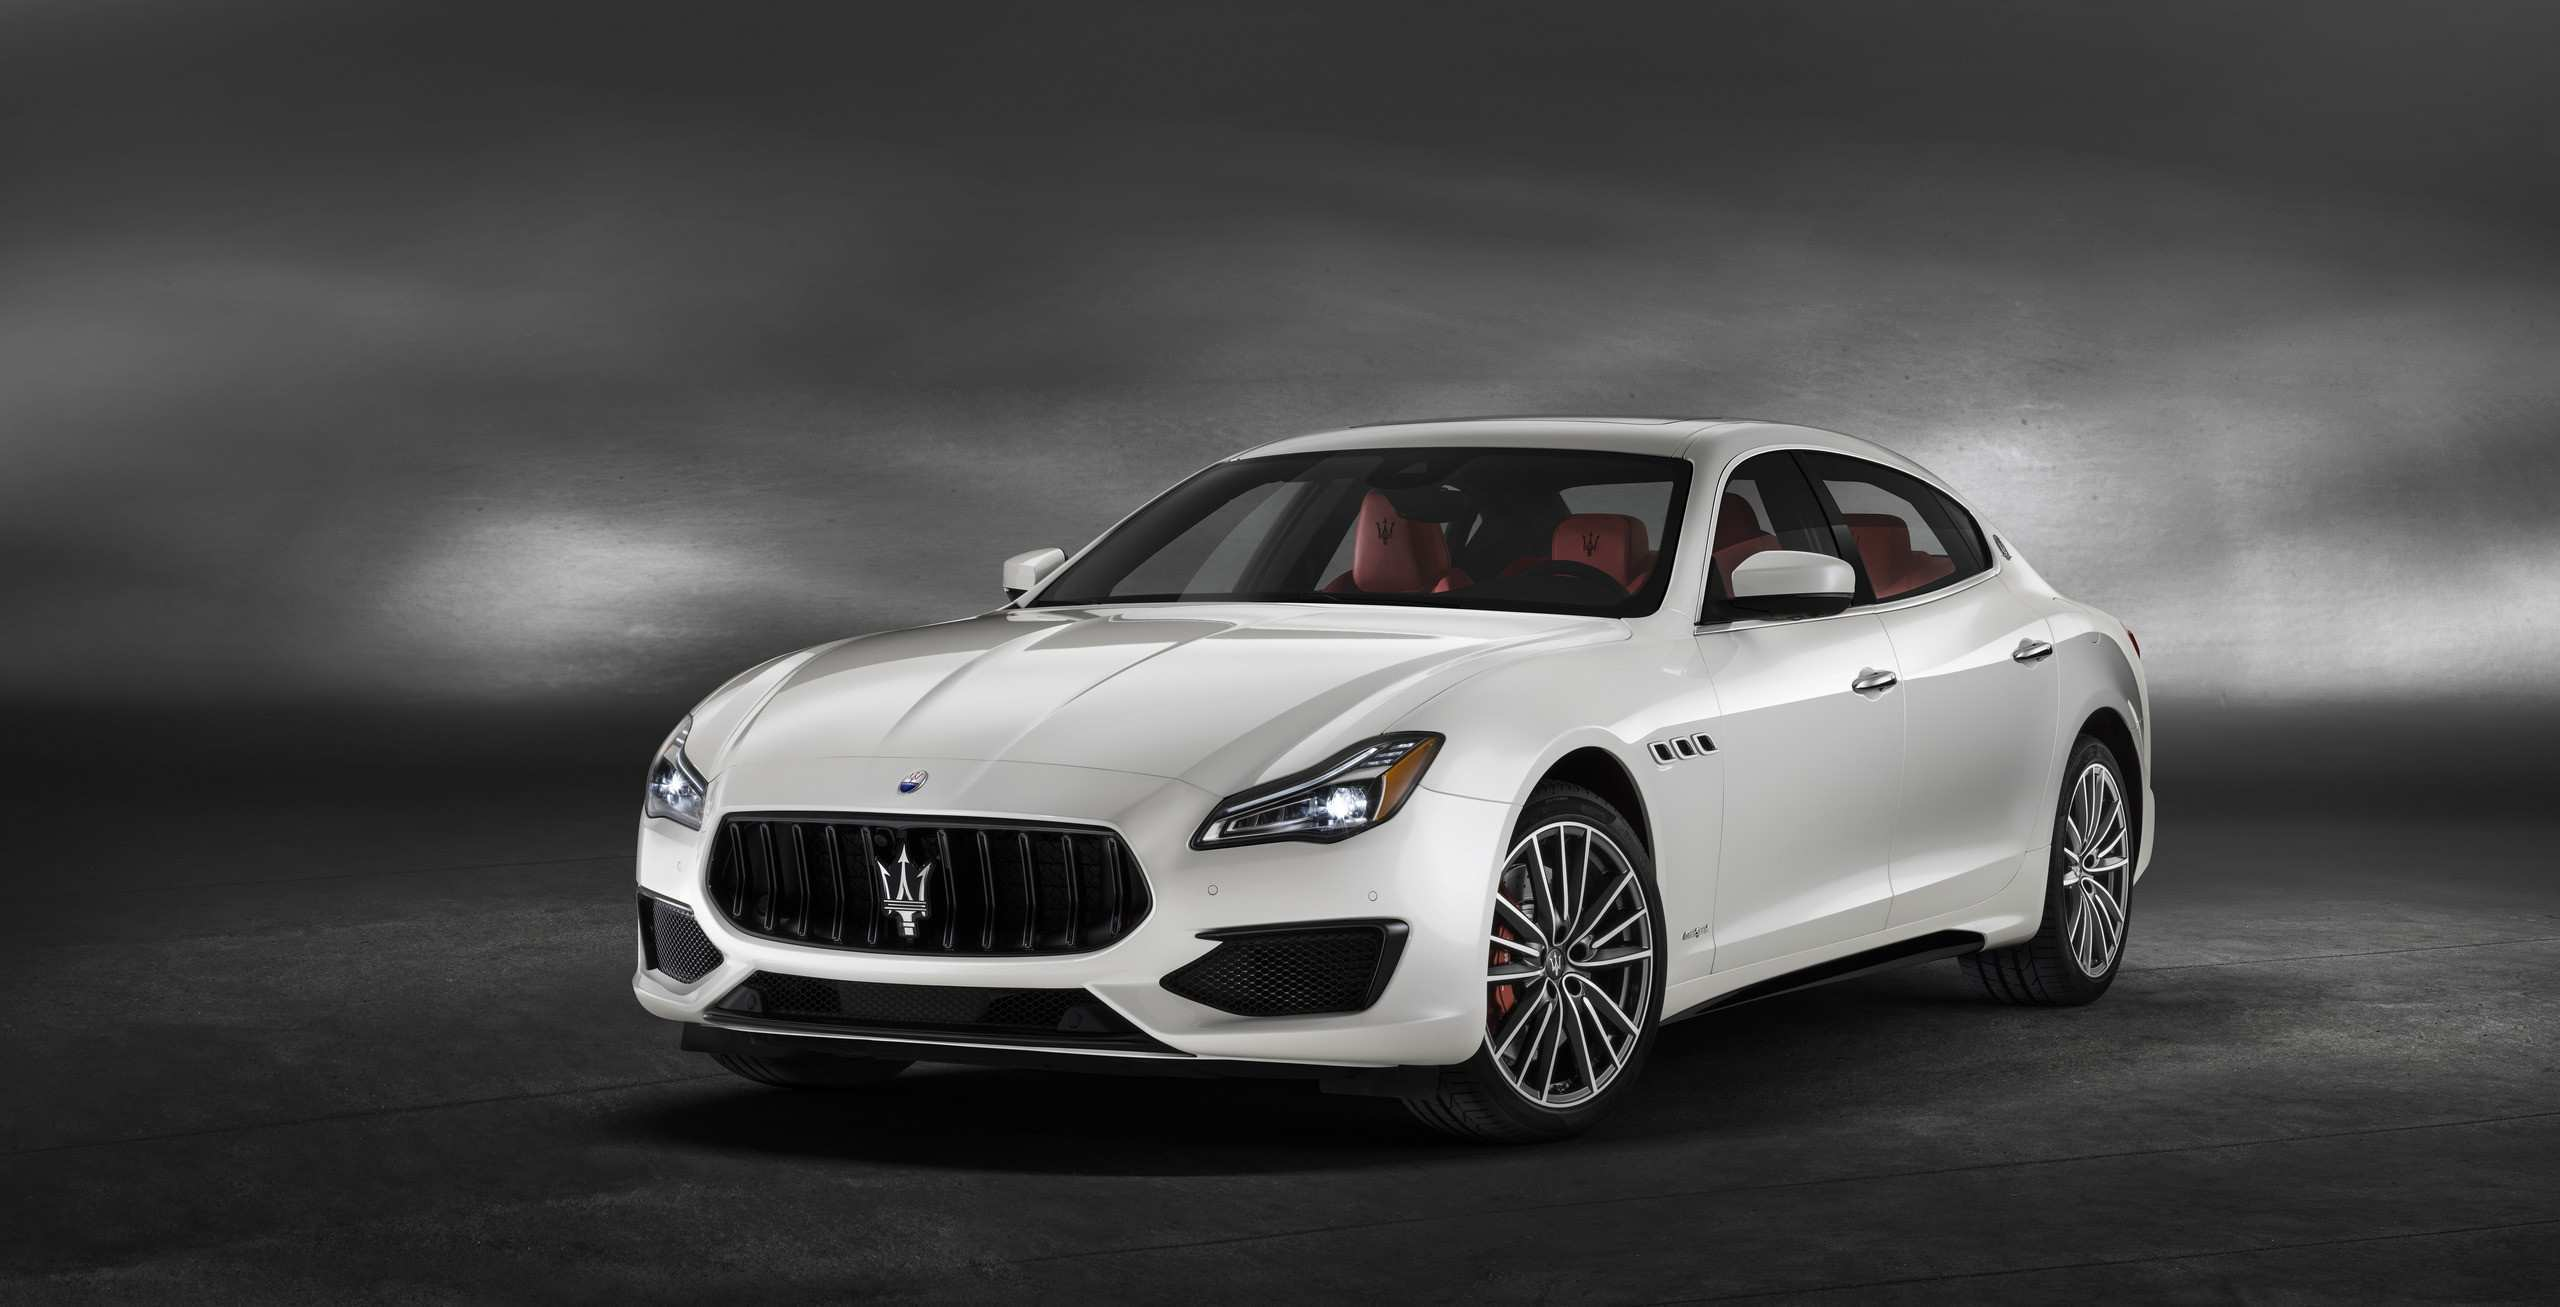 73 The Best 2019 Maserati Cost Picture